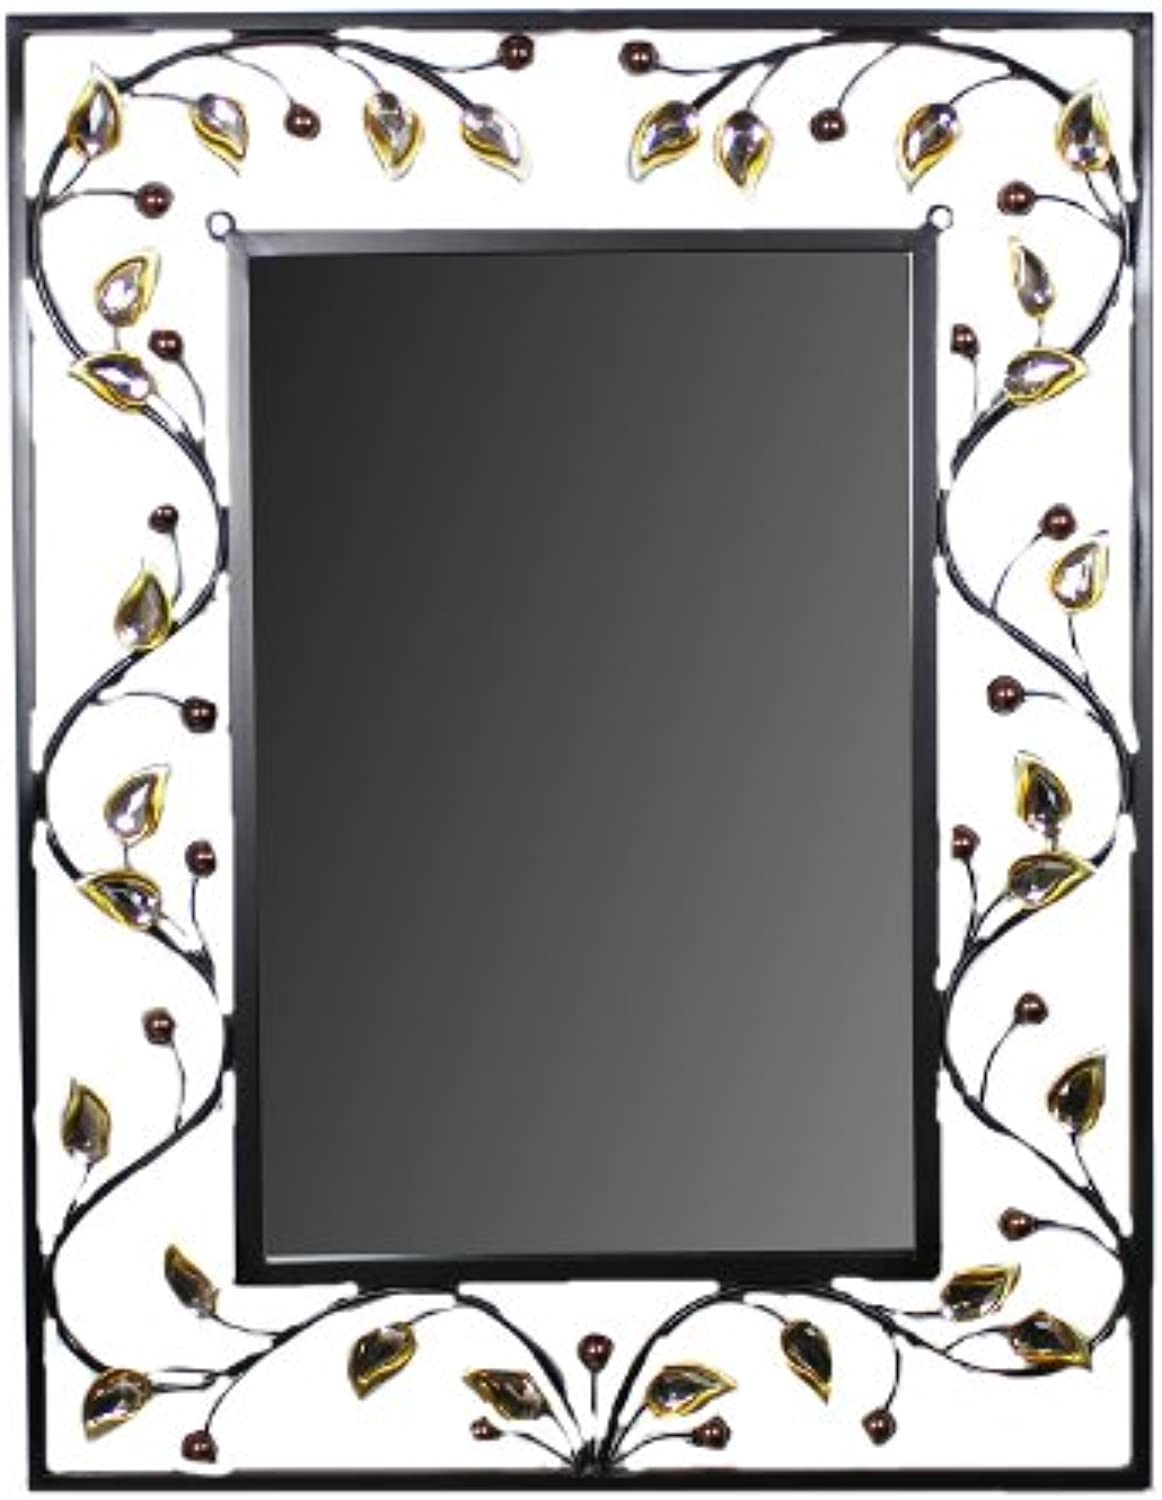 Essential Décor Entrada Collection Mirror with Metal Frame, 23 by 30-Inch